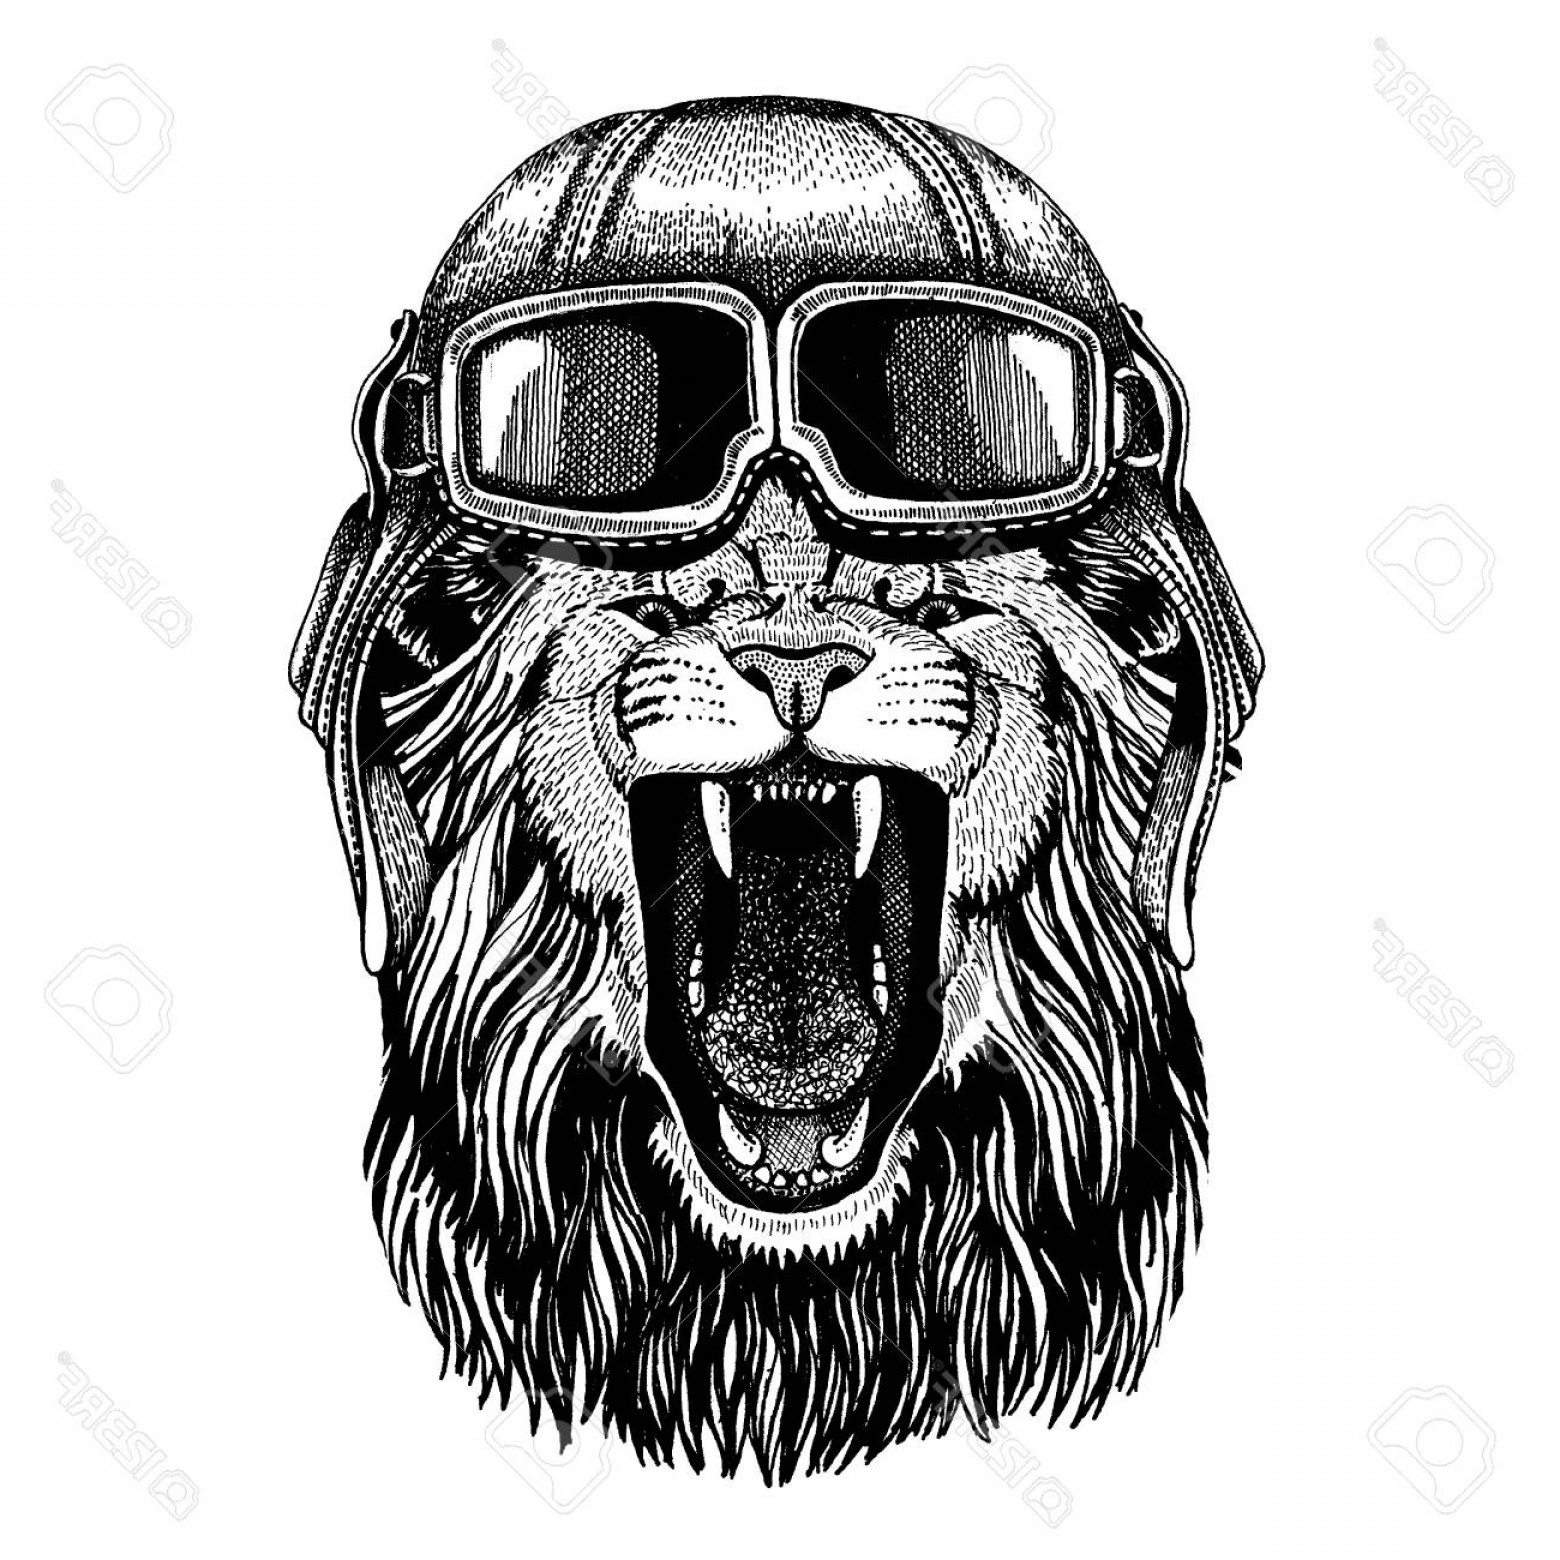 Aviator Vector Ink Drawings: Photostock Vector Animal Wearing Aviator Helmet With Glasses Vector Picture Hand Drawn Image Of Lion For Tattoo T Shir